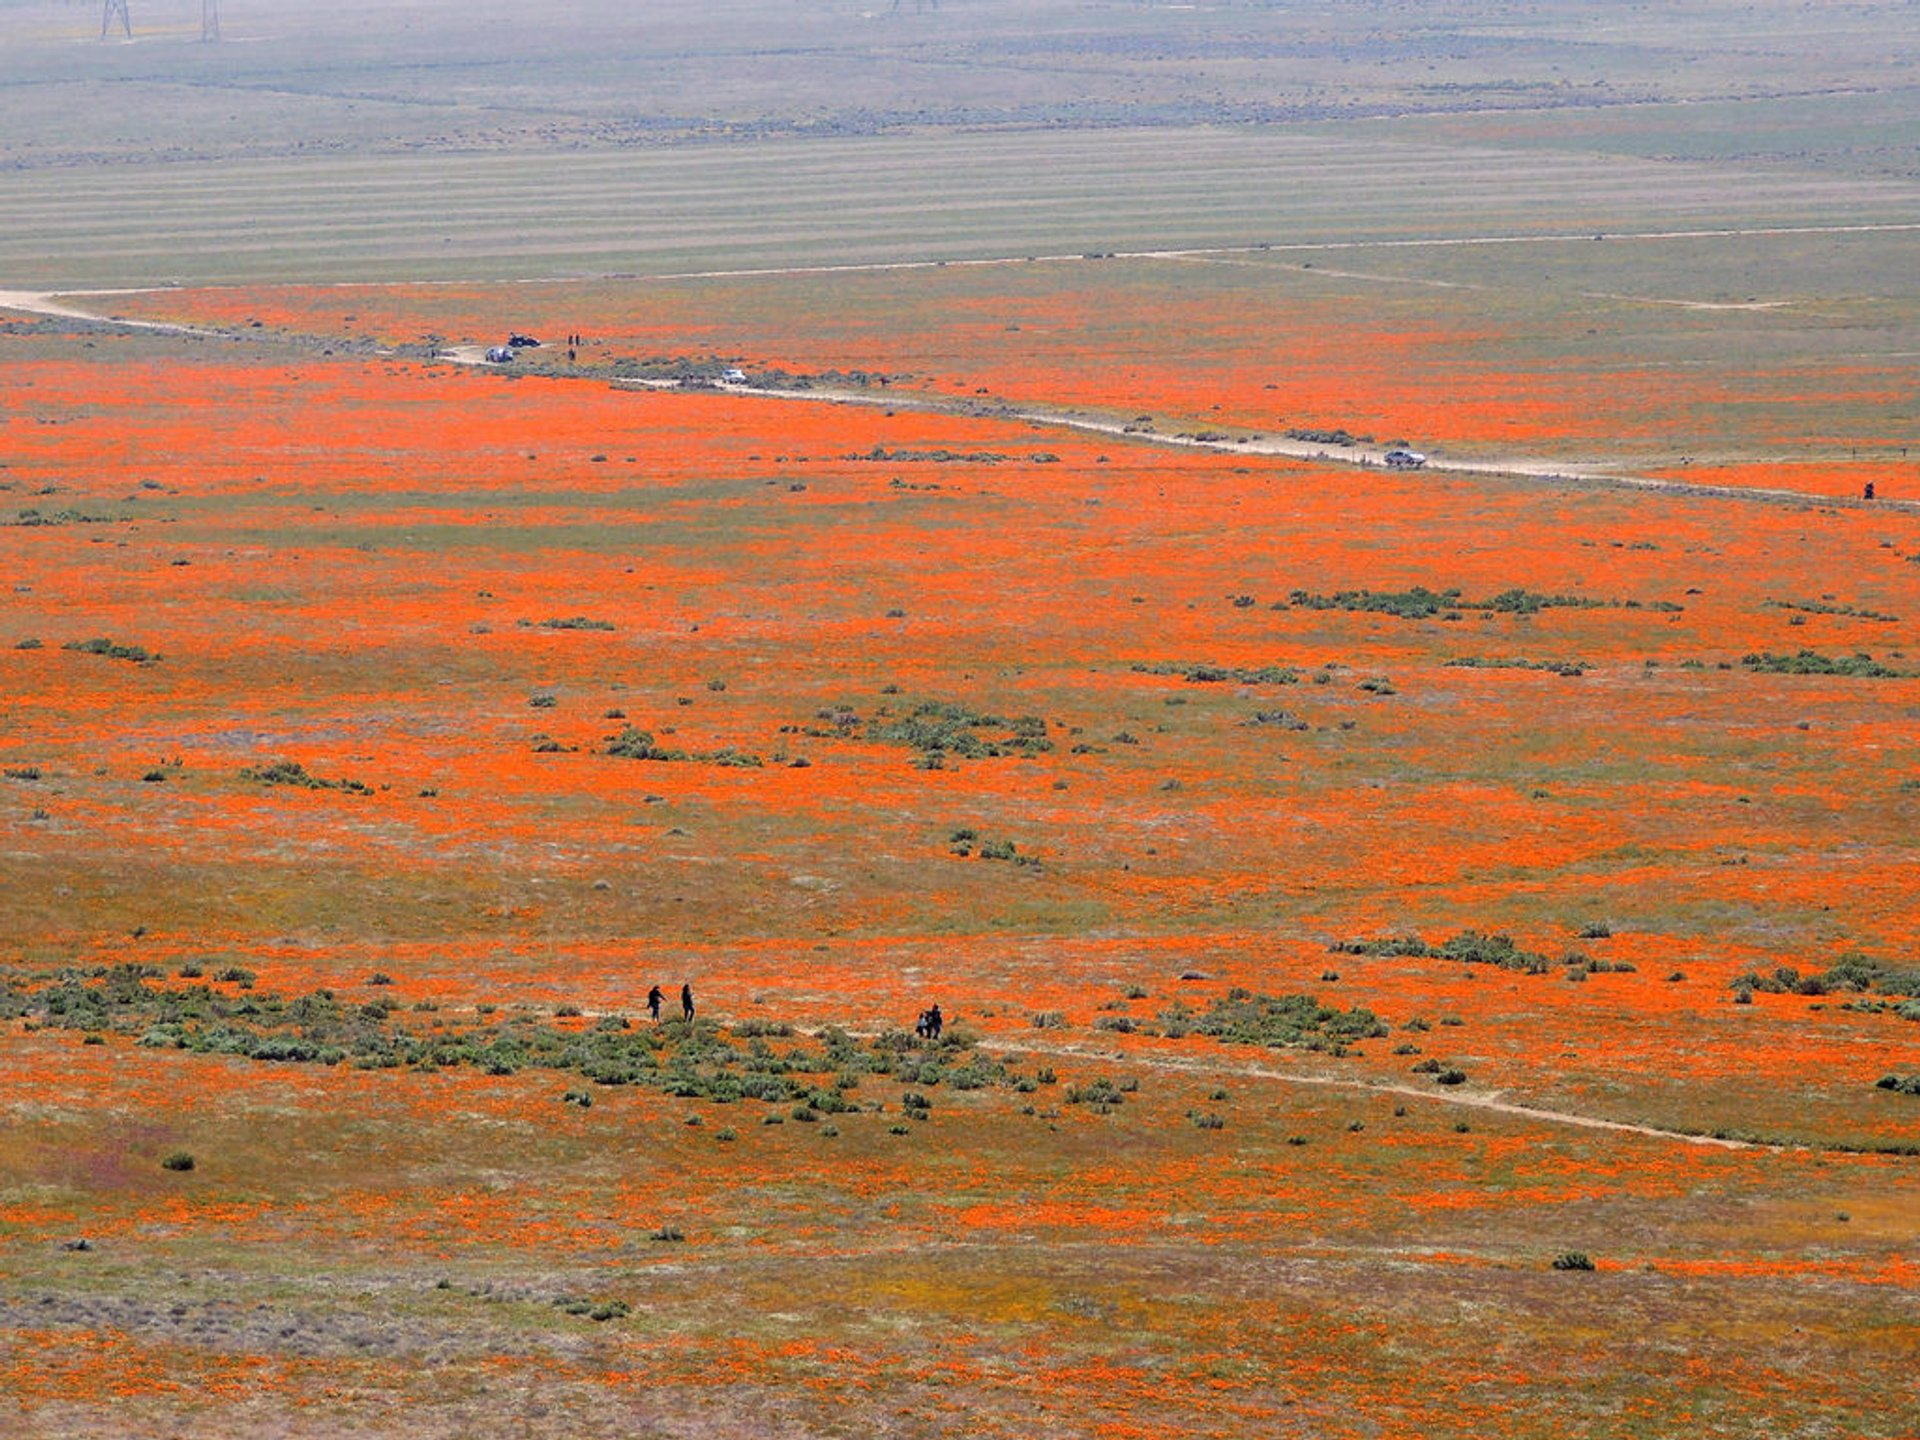 Antelope Valley California Poppy Reserve in California - Best Season 2019